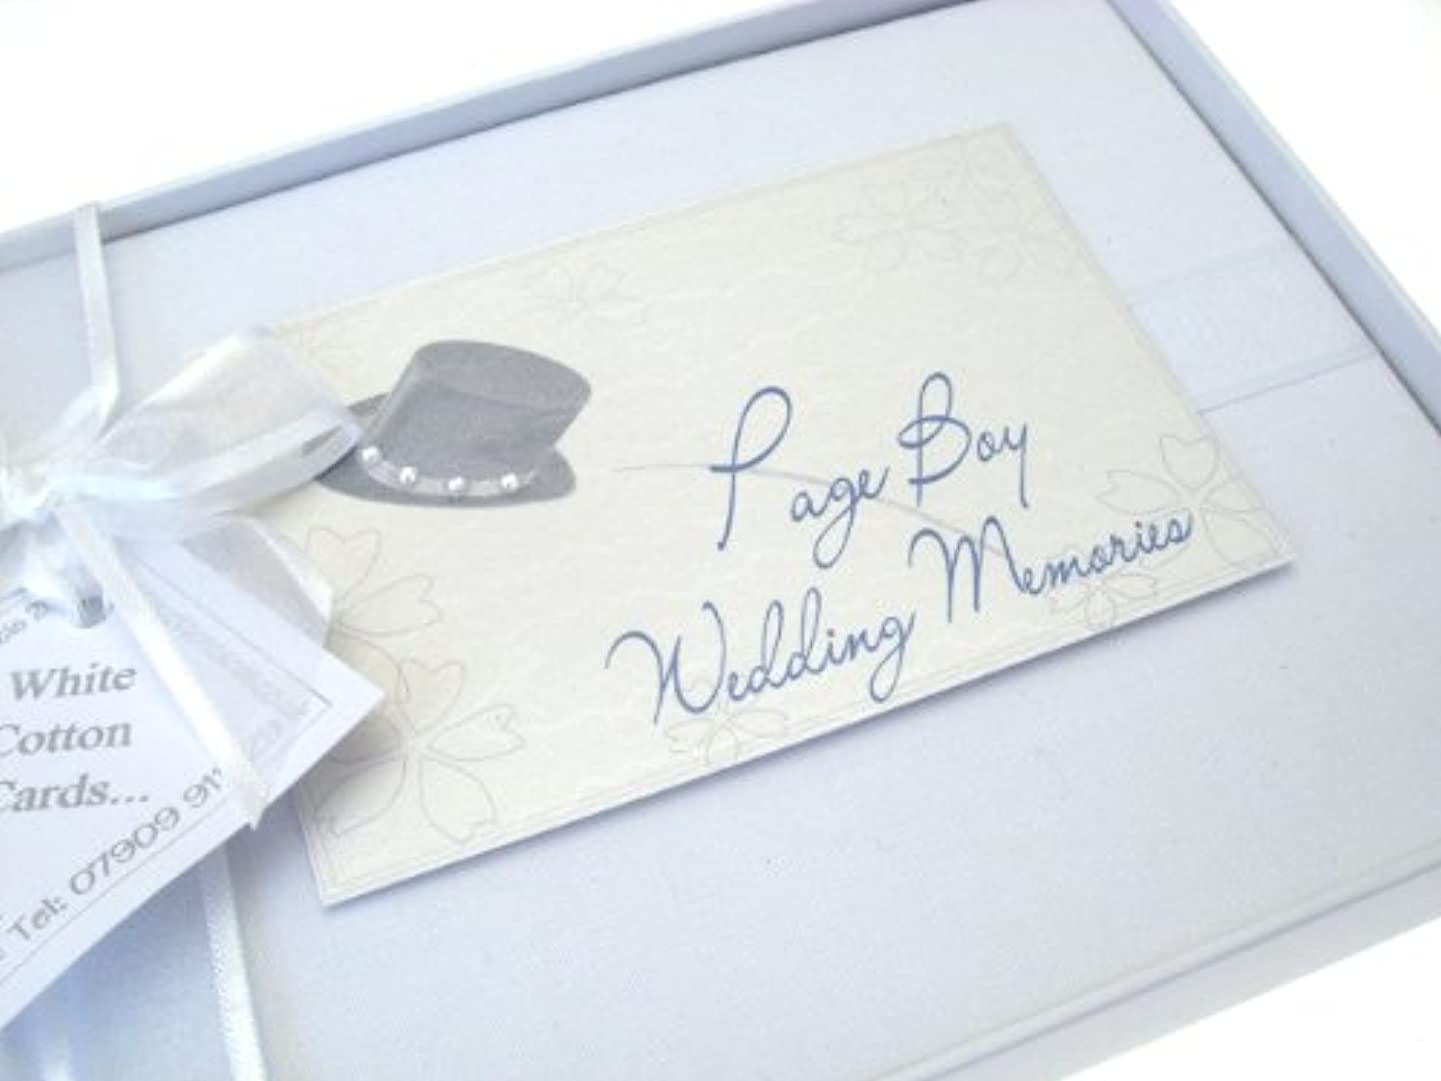 White Cotton Cards Page Boy Album, Small